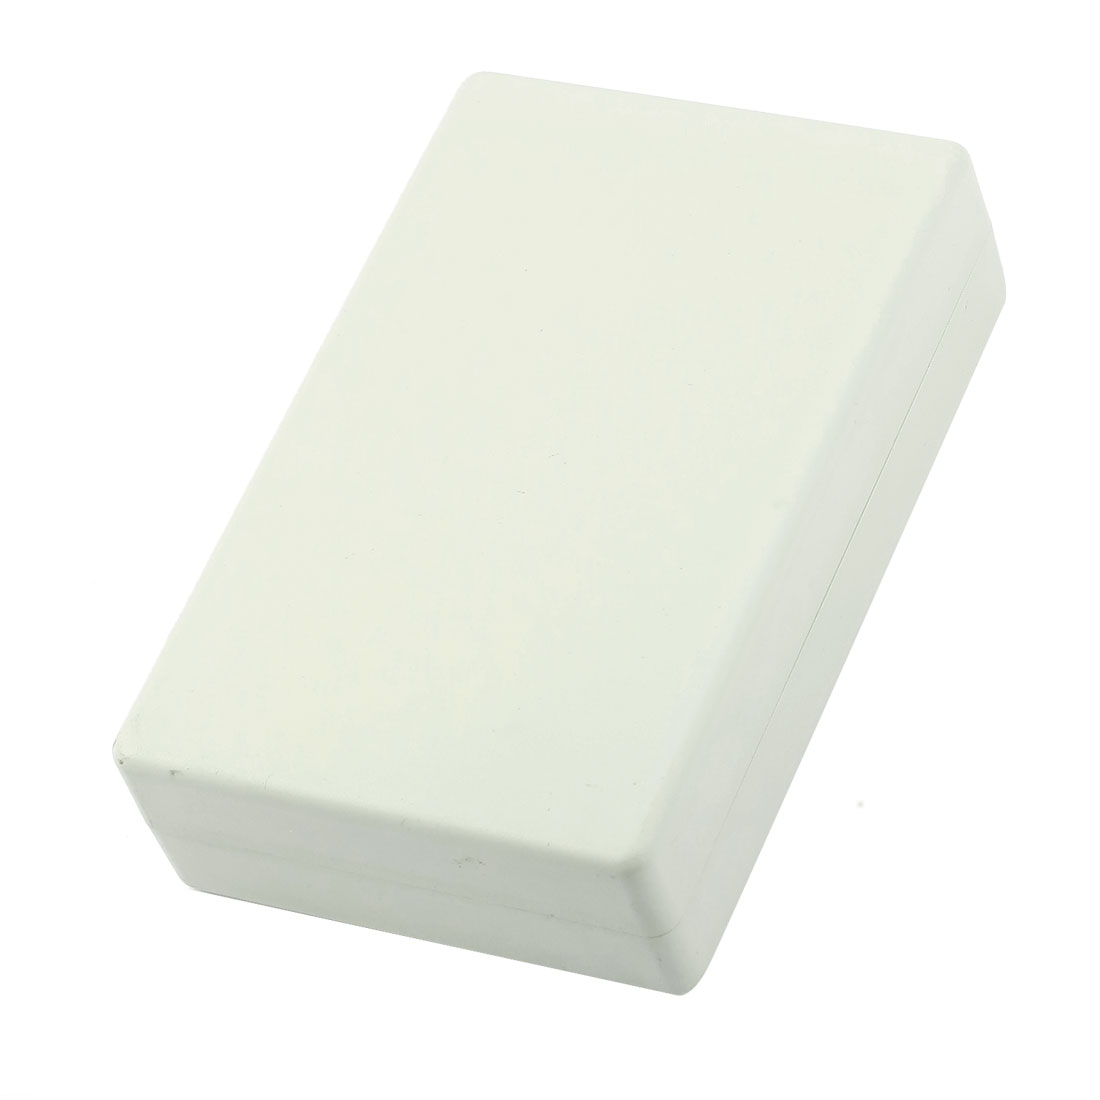 Light Gray Plastic Sealed Electric Junction Enclose Box Power Protection Case 125mm x 80mm x 33mm